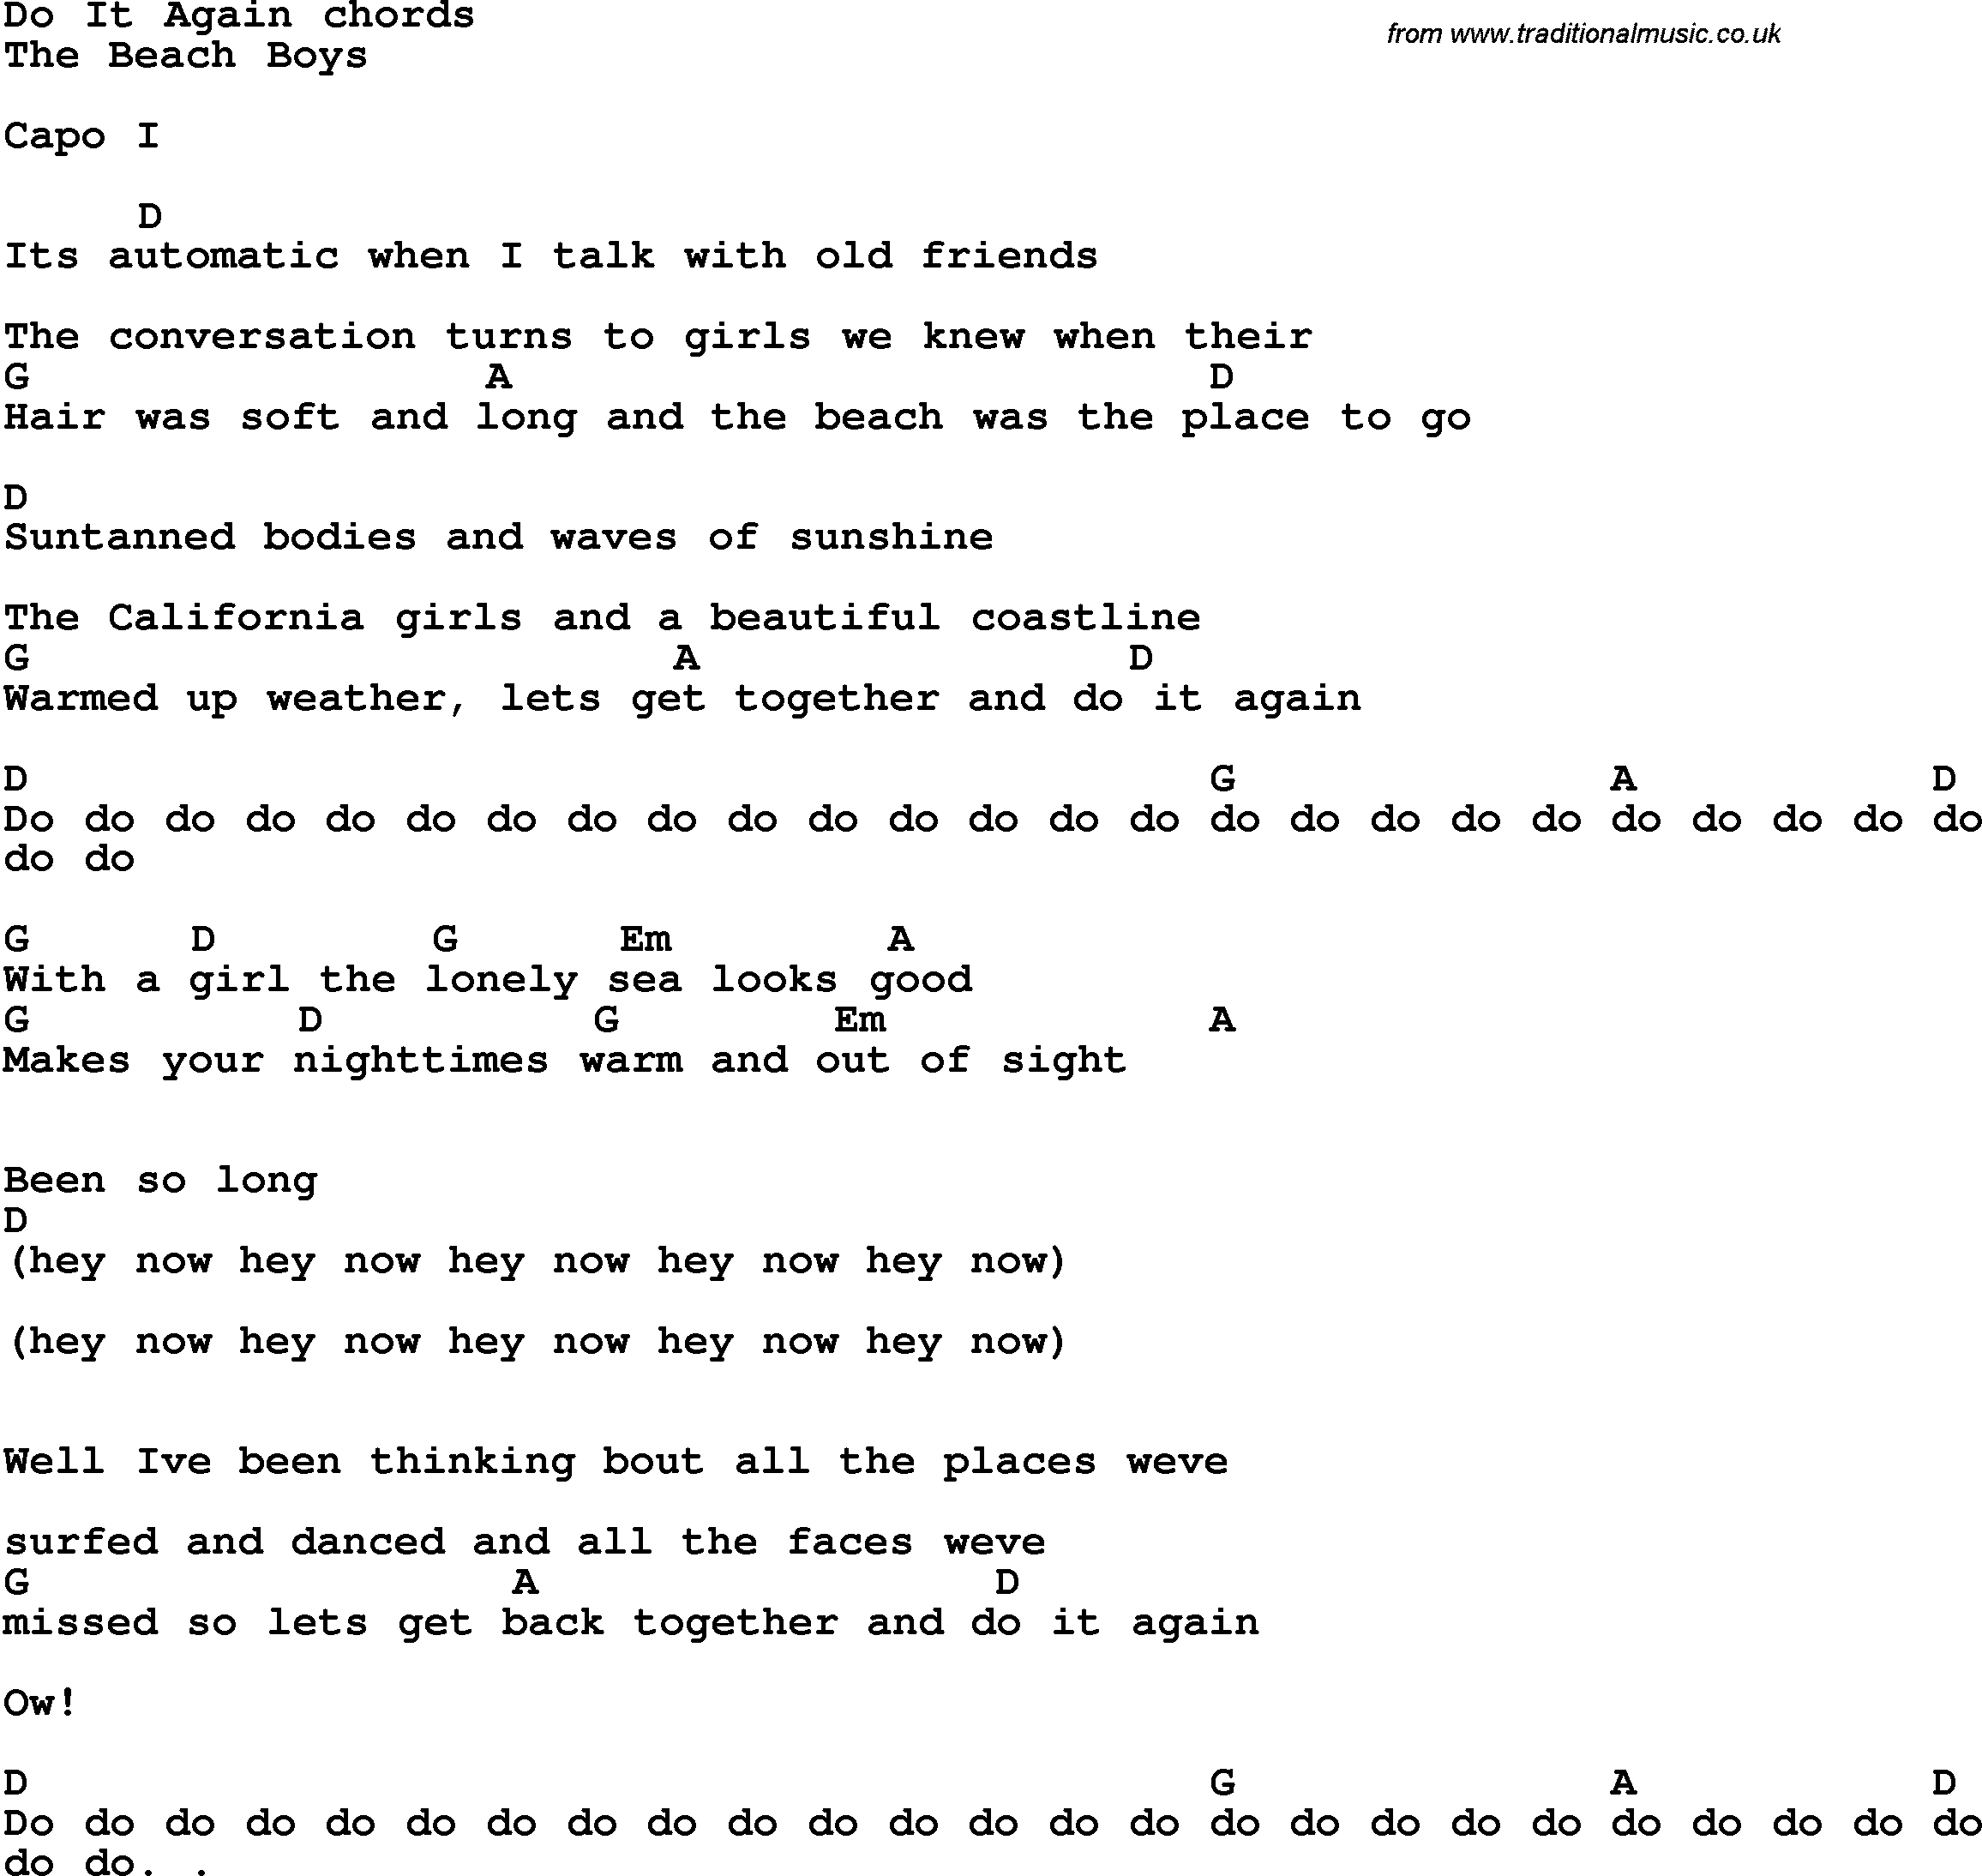 Song lyrics with guitar chords for Do It Again